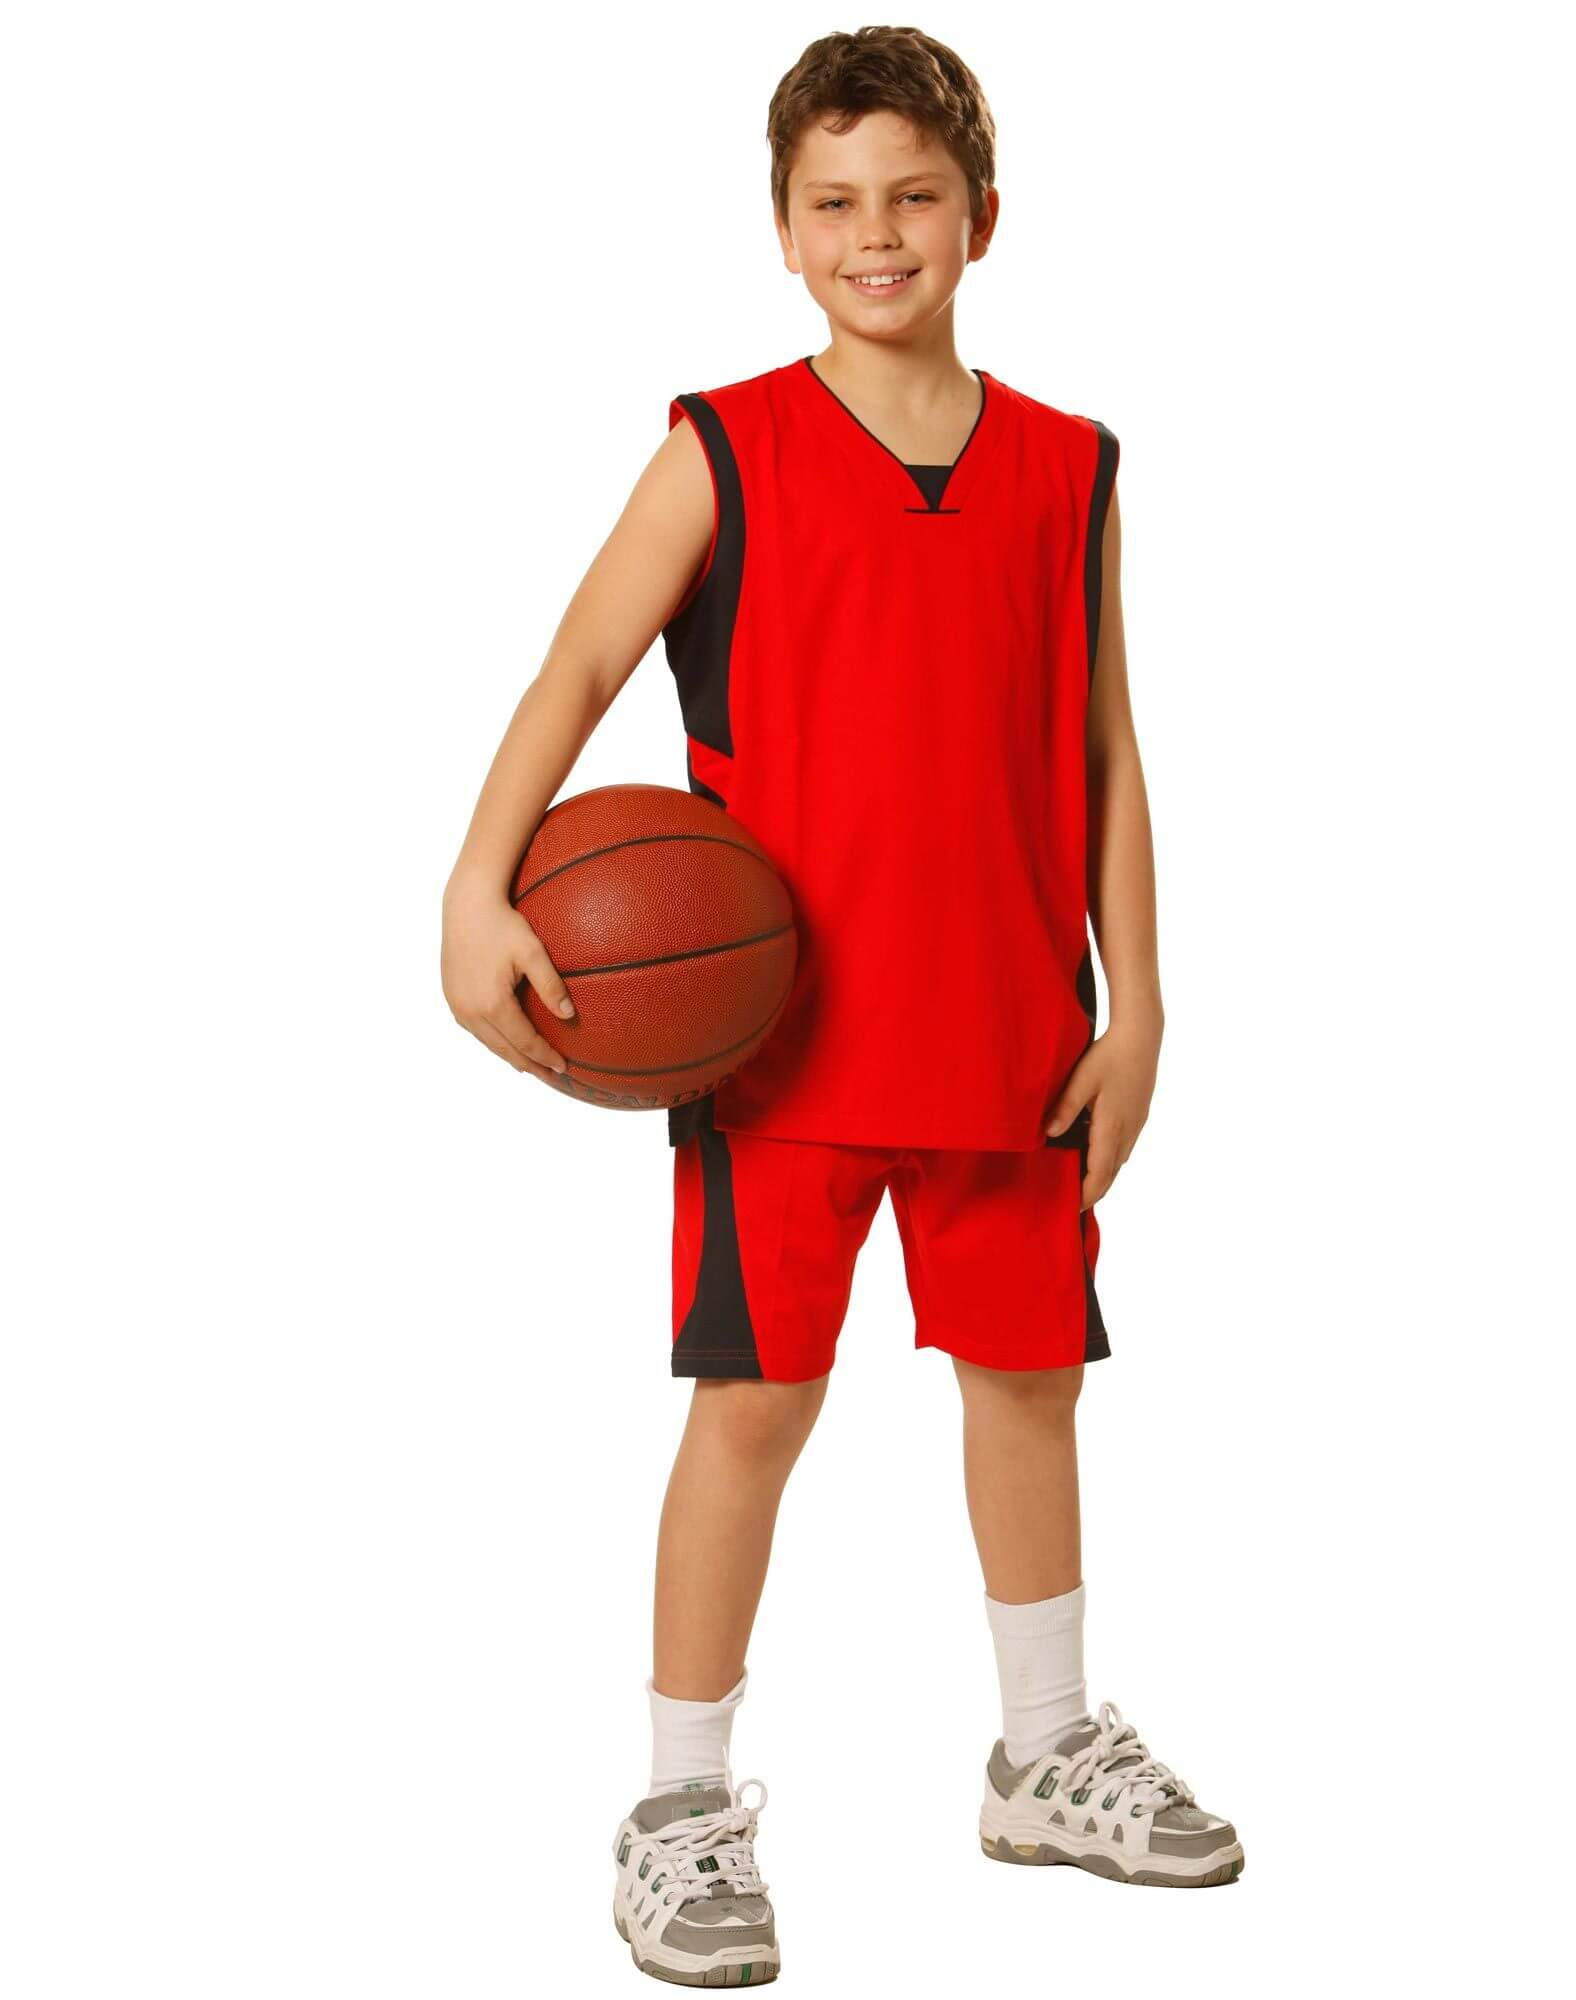 Kids Basketball Jerseys Manufacturers in Raipur